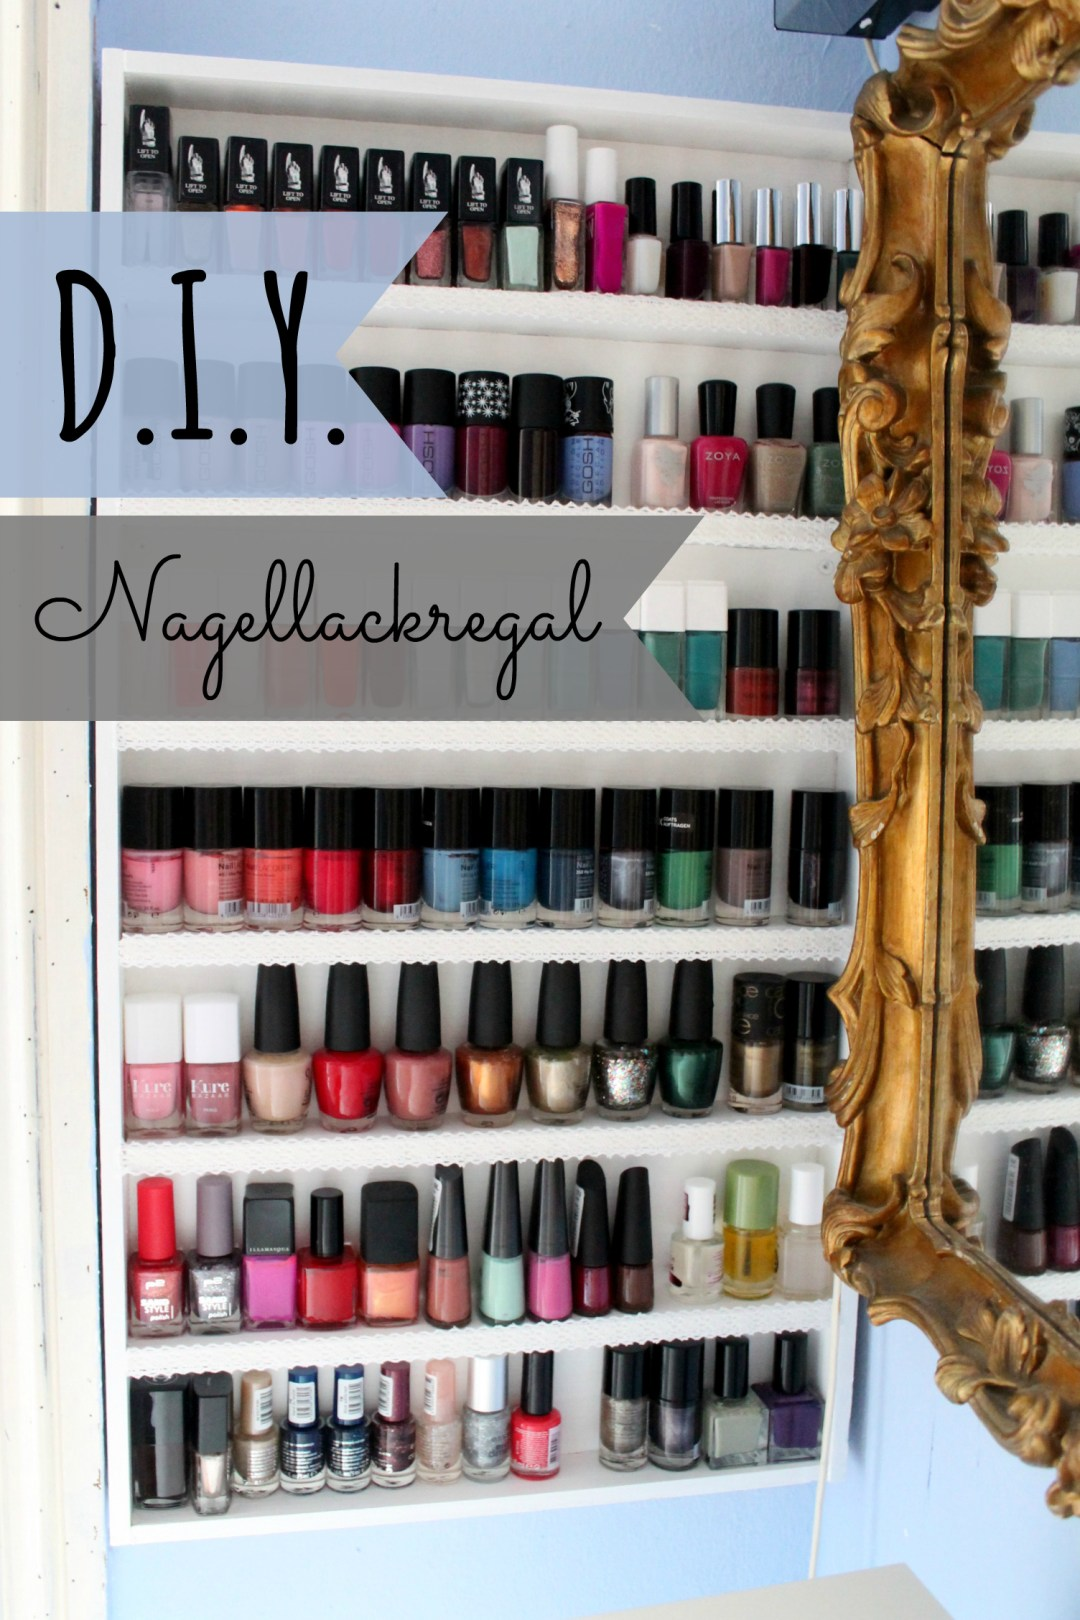 diy | nagellackregal - once upon a cream | vegan beauty blog